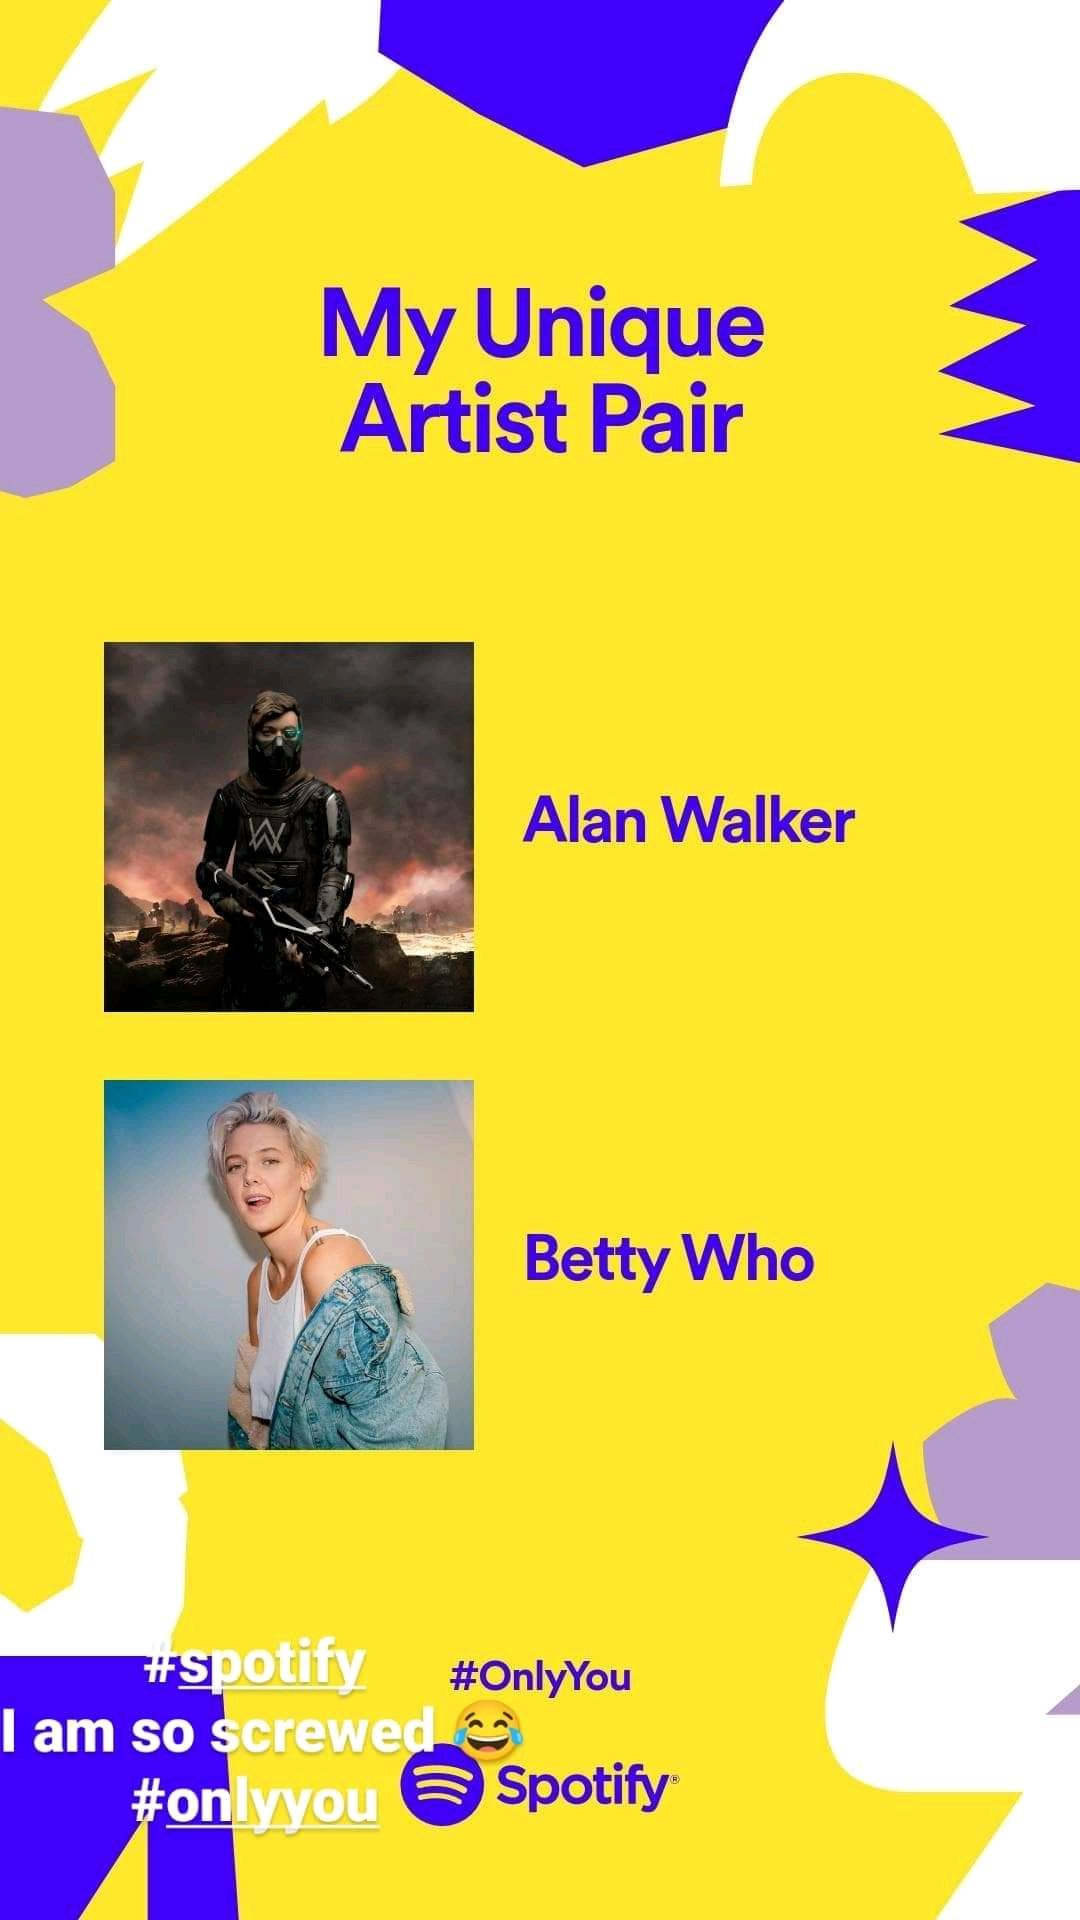 Alan Walker and Betty Who